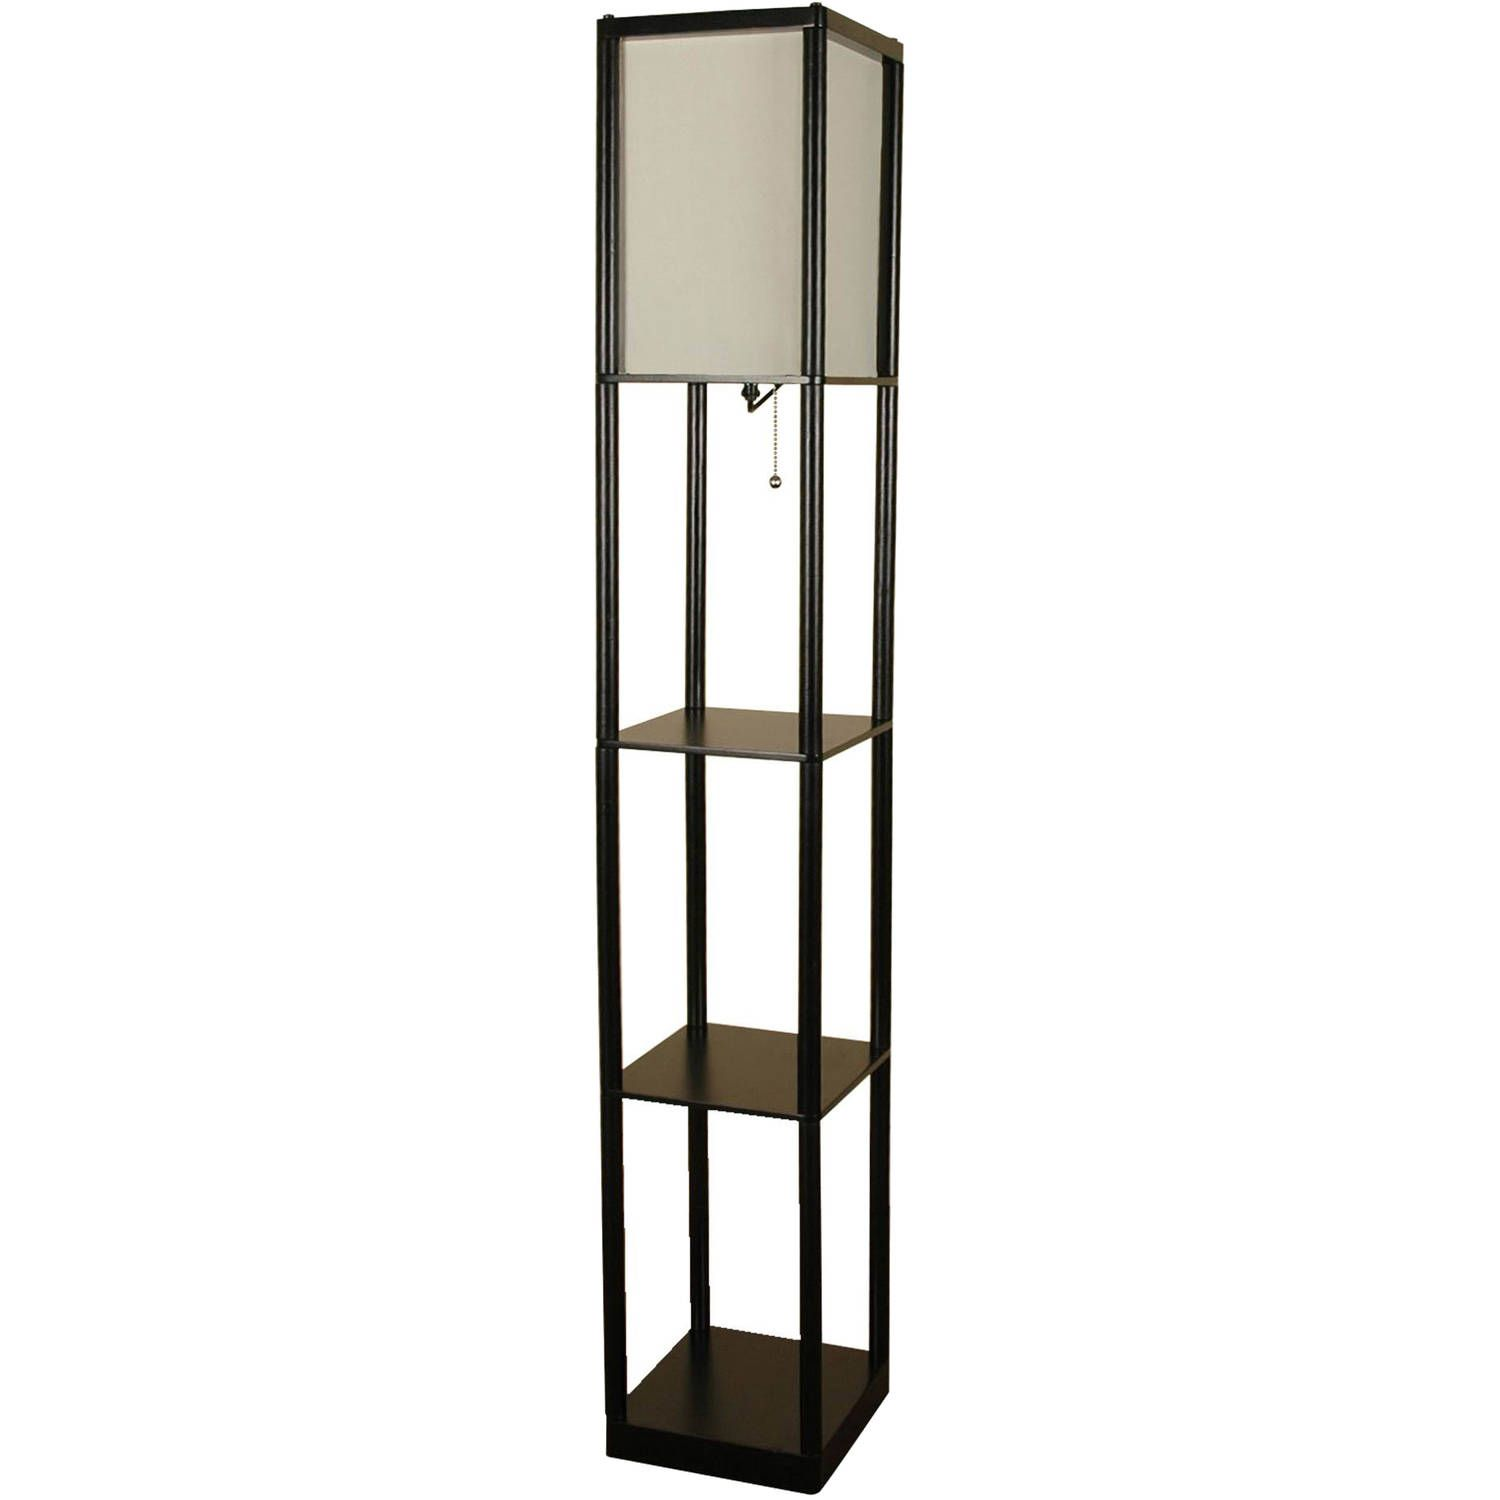 How To Enhance Your Home S Overall Feel And Look With A Standing Lamp Darbylanefurniture Com In 2020 Floor Lamp With Shelves Shelf Lamp Floor Lamp Lighting